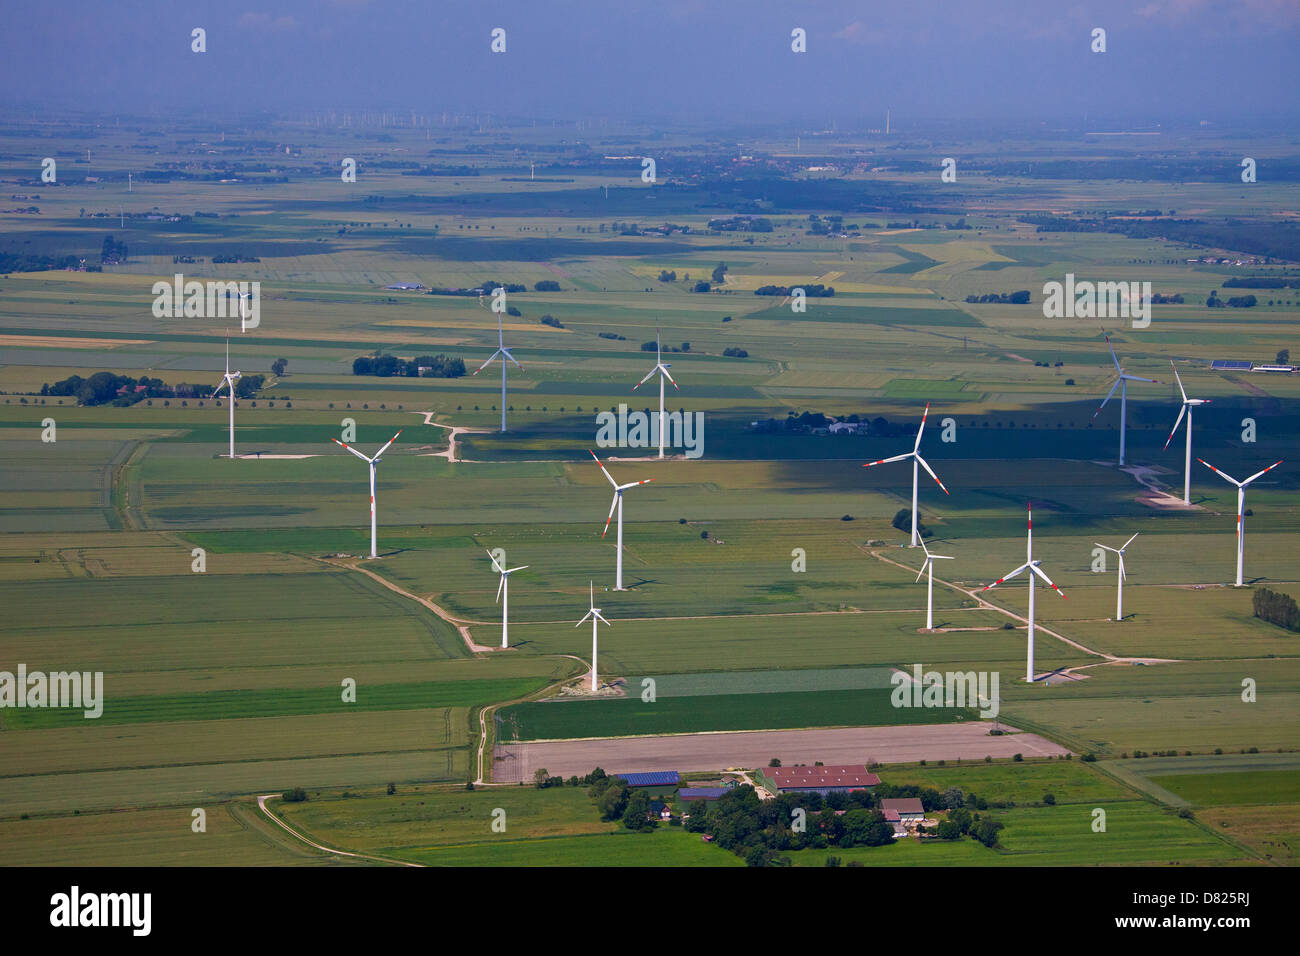 Aerial view over wind turbines at wind farm - Stock Image